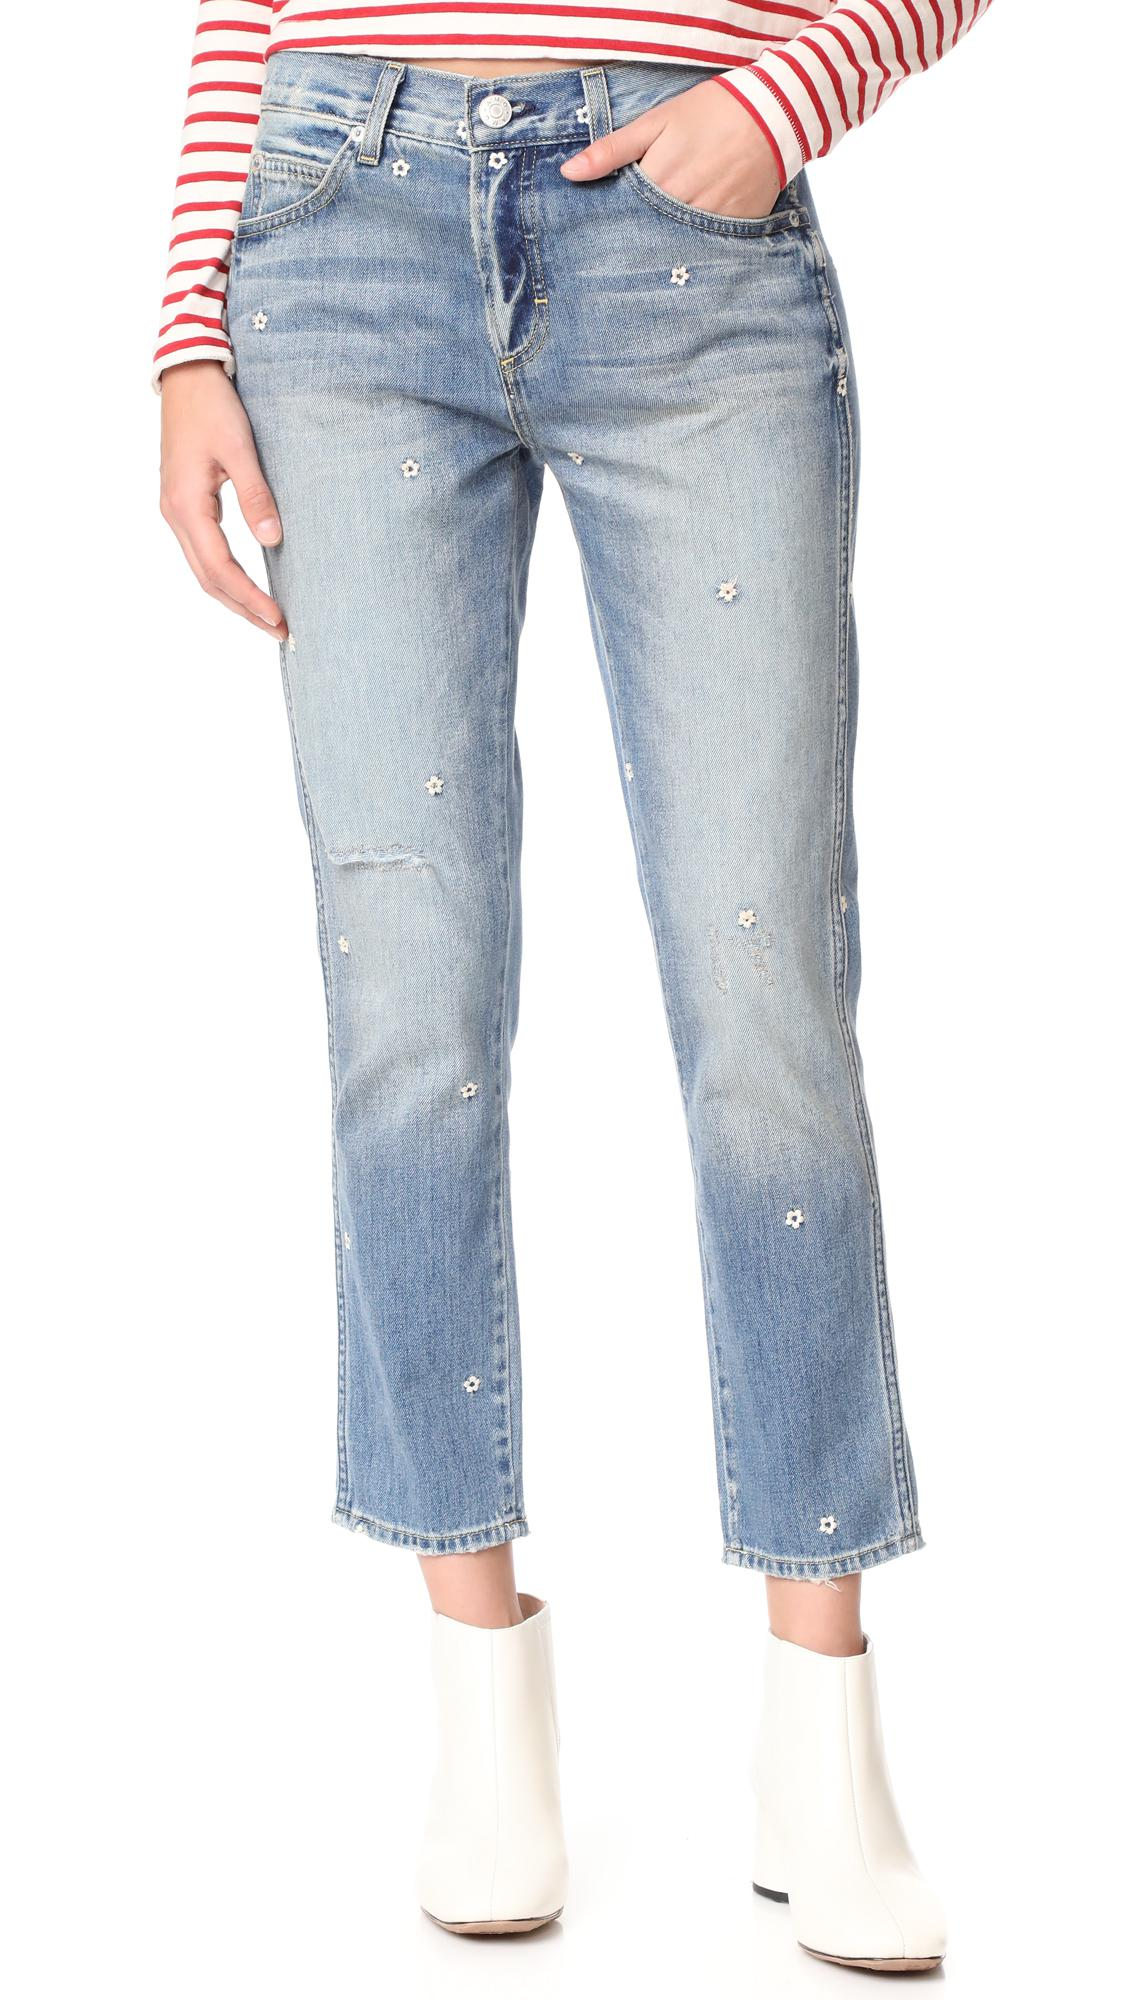 cropped tomboy jeans - Blue Amo mVBTjAntH